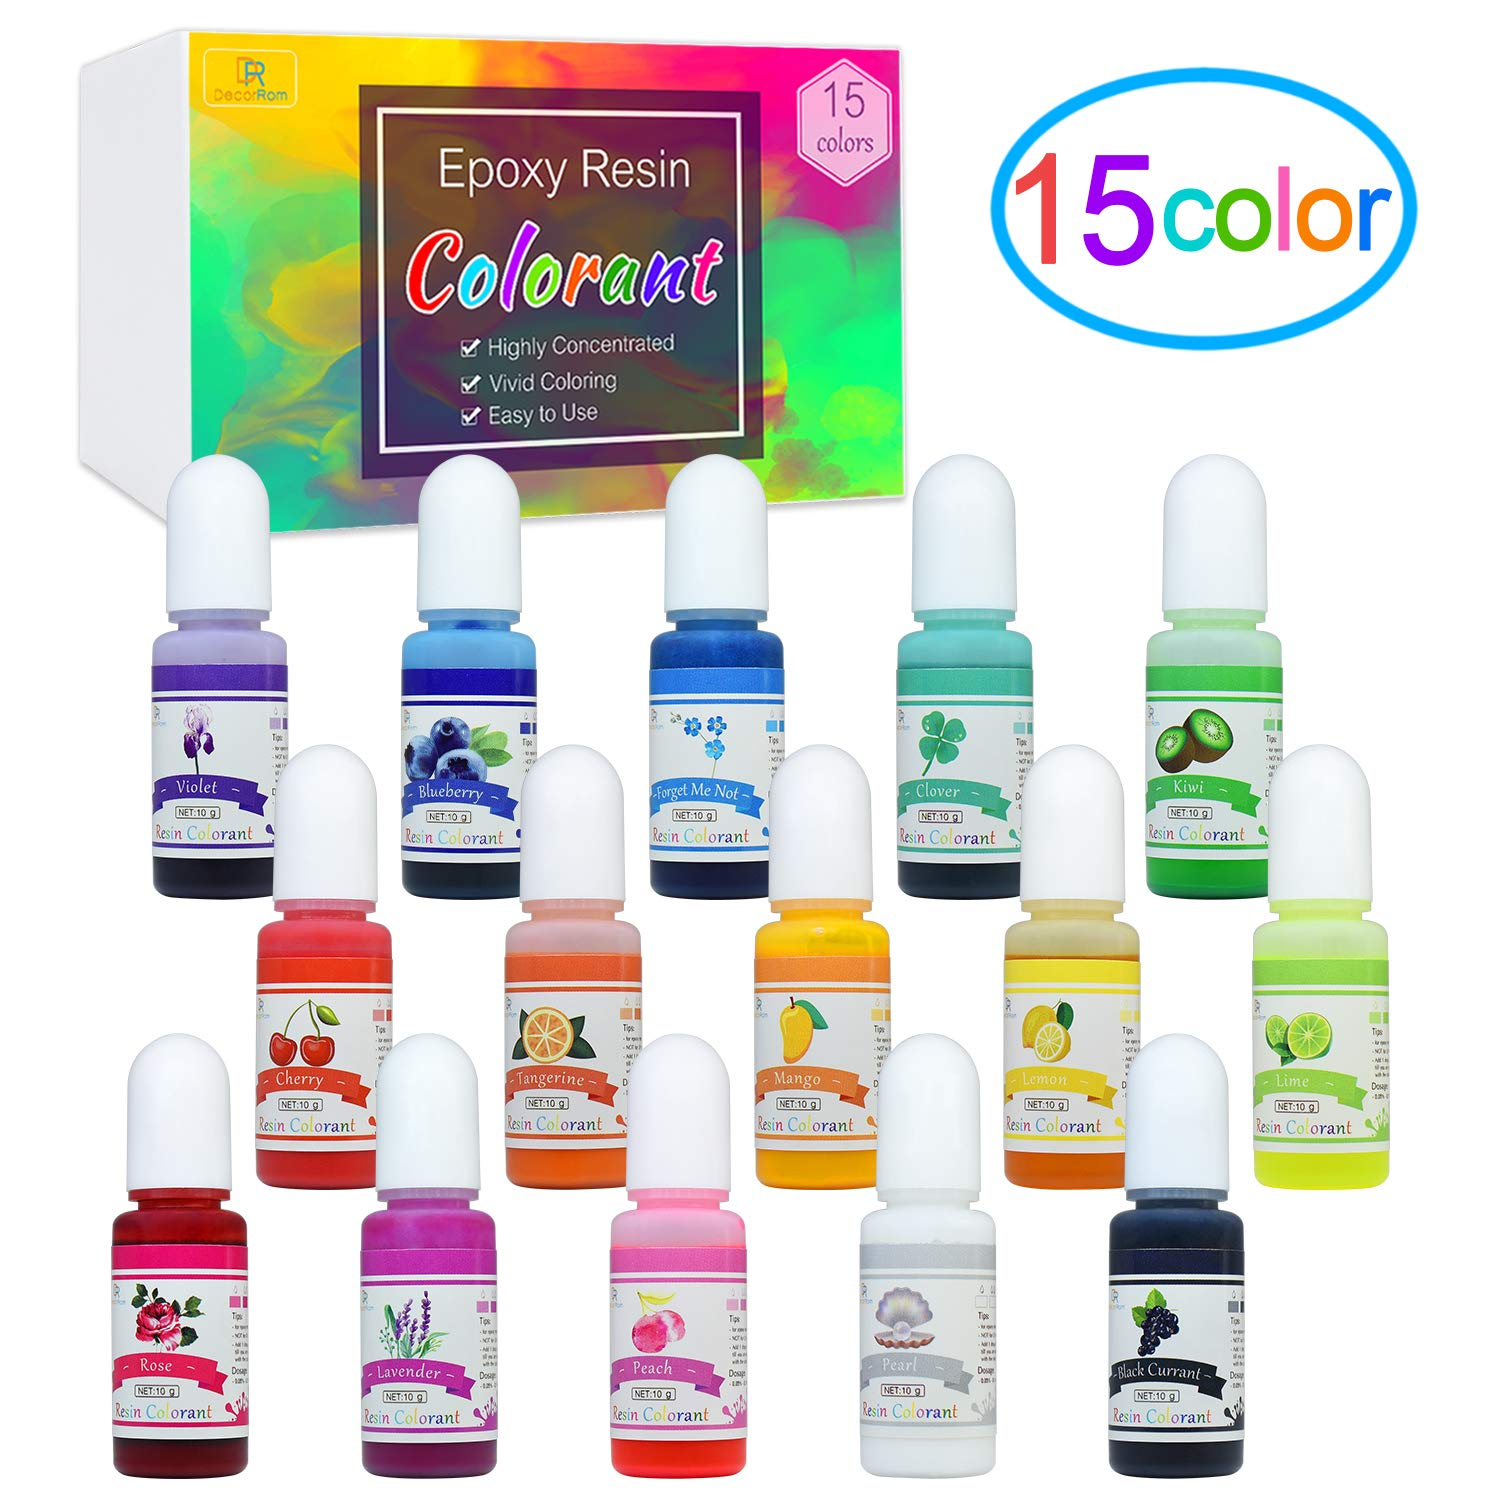 Epoxy Resin Pigment - 15 Color Liquid Epoxy Resin Dye - Highly Concentrated Epoxy Resin Colorant for Resin Color Art, DIY Jewelry Making Supplies - AB Resin Coloring for Paint, Crafts - 10ml Each